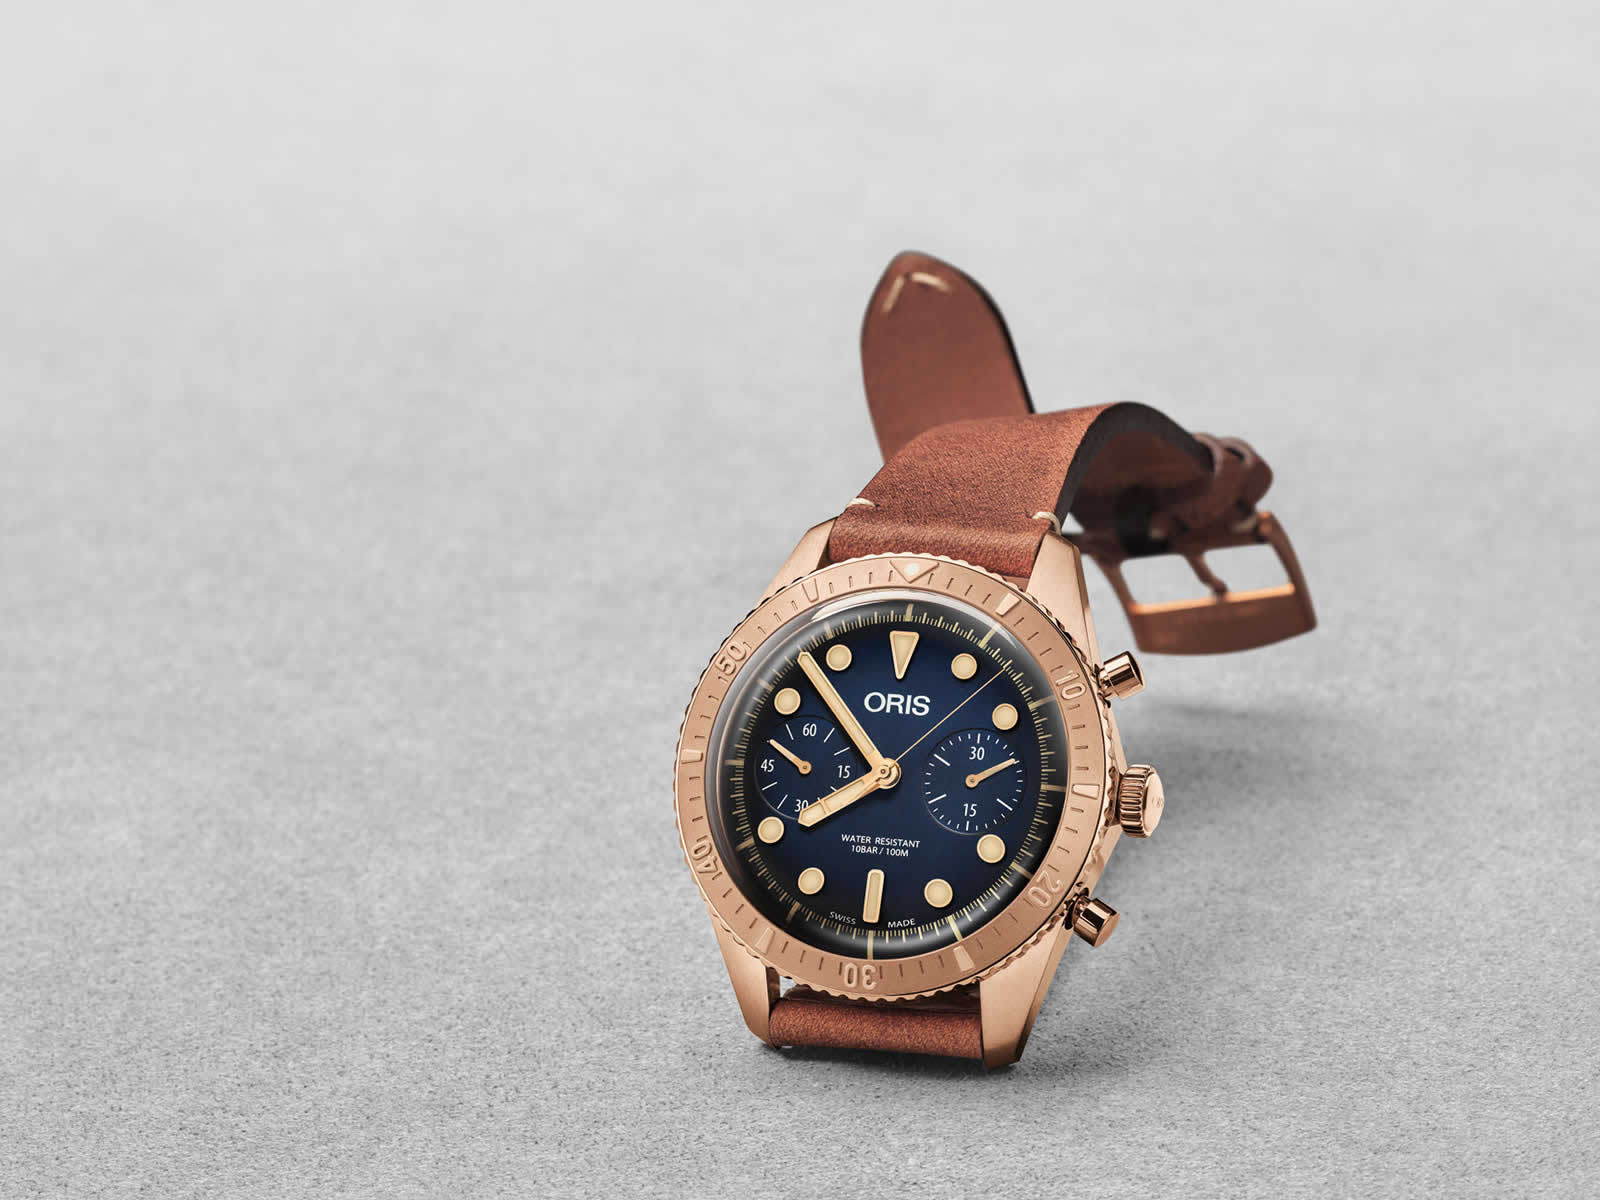 01-771-7744-3185-Oris-Carl-Brashear-Chronograph-Limited-Edition-4.jpg